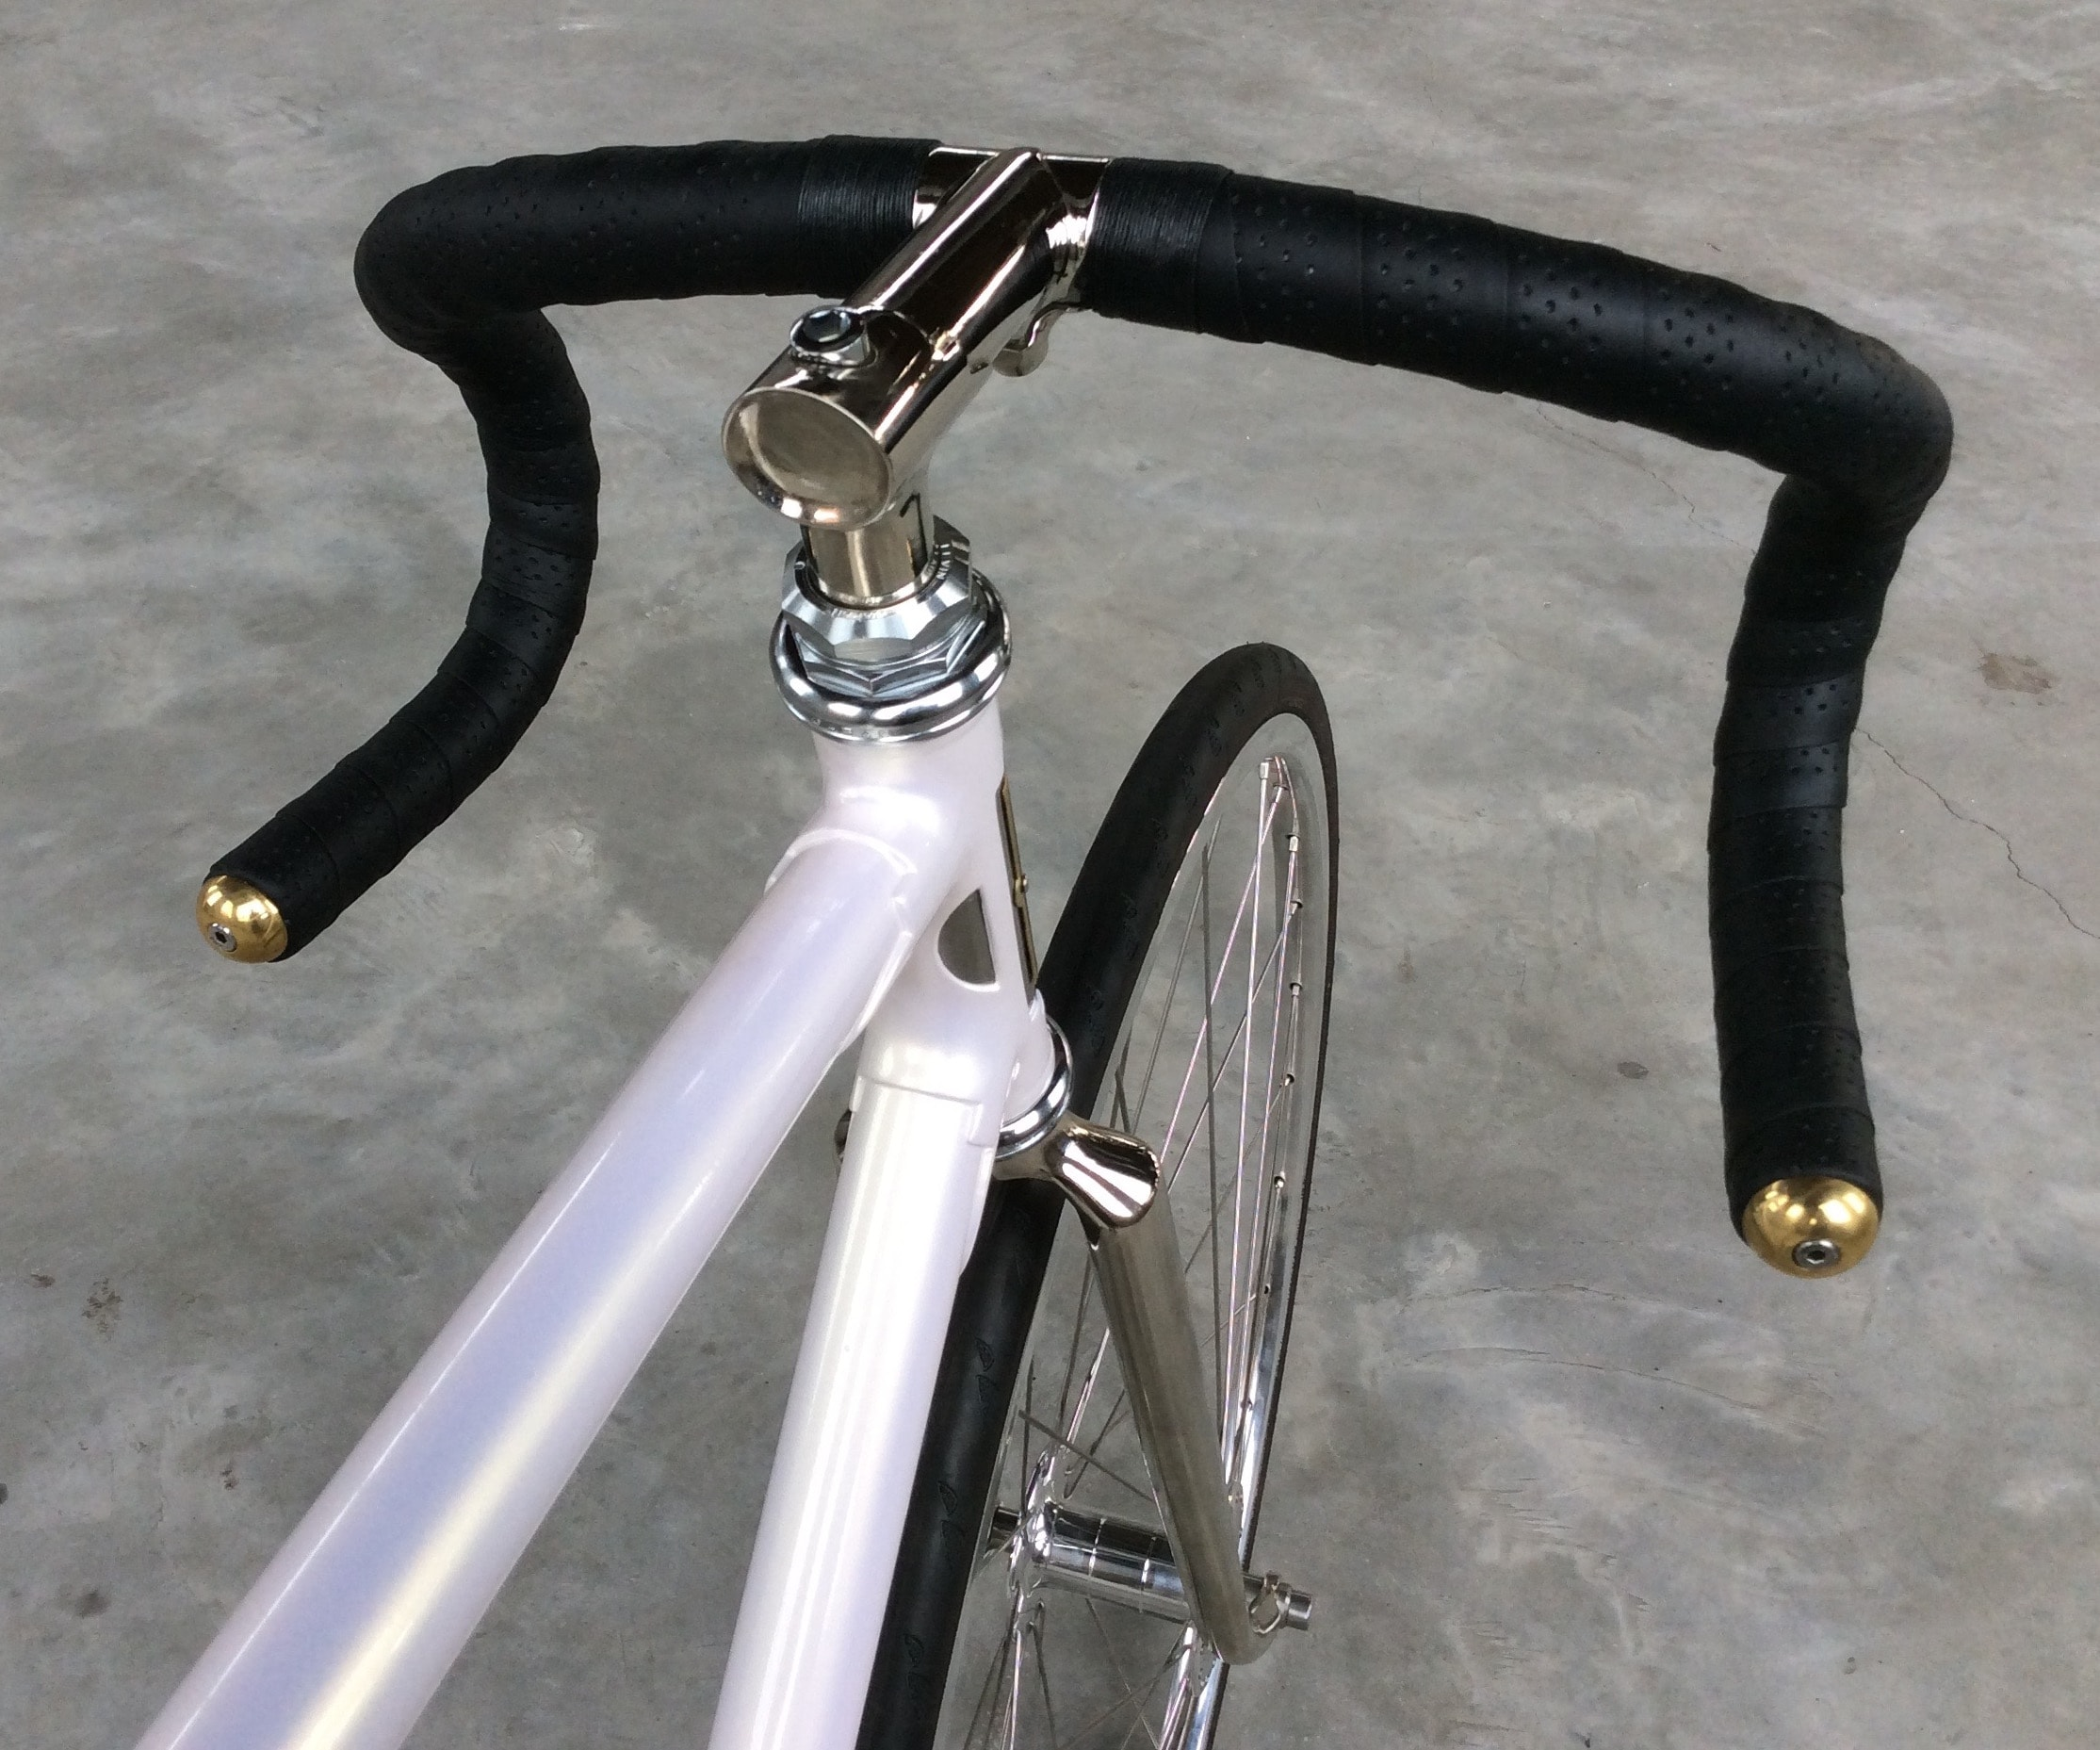 track, fixie, fixedgear, fixed gear, singlespeed, bike, steel